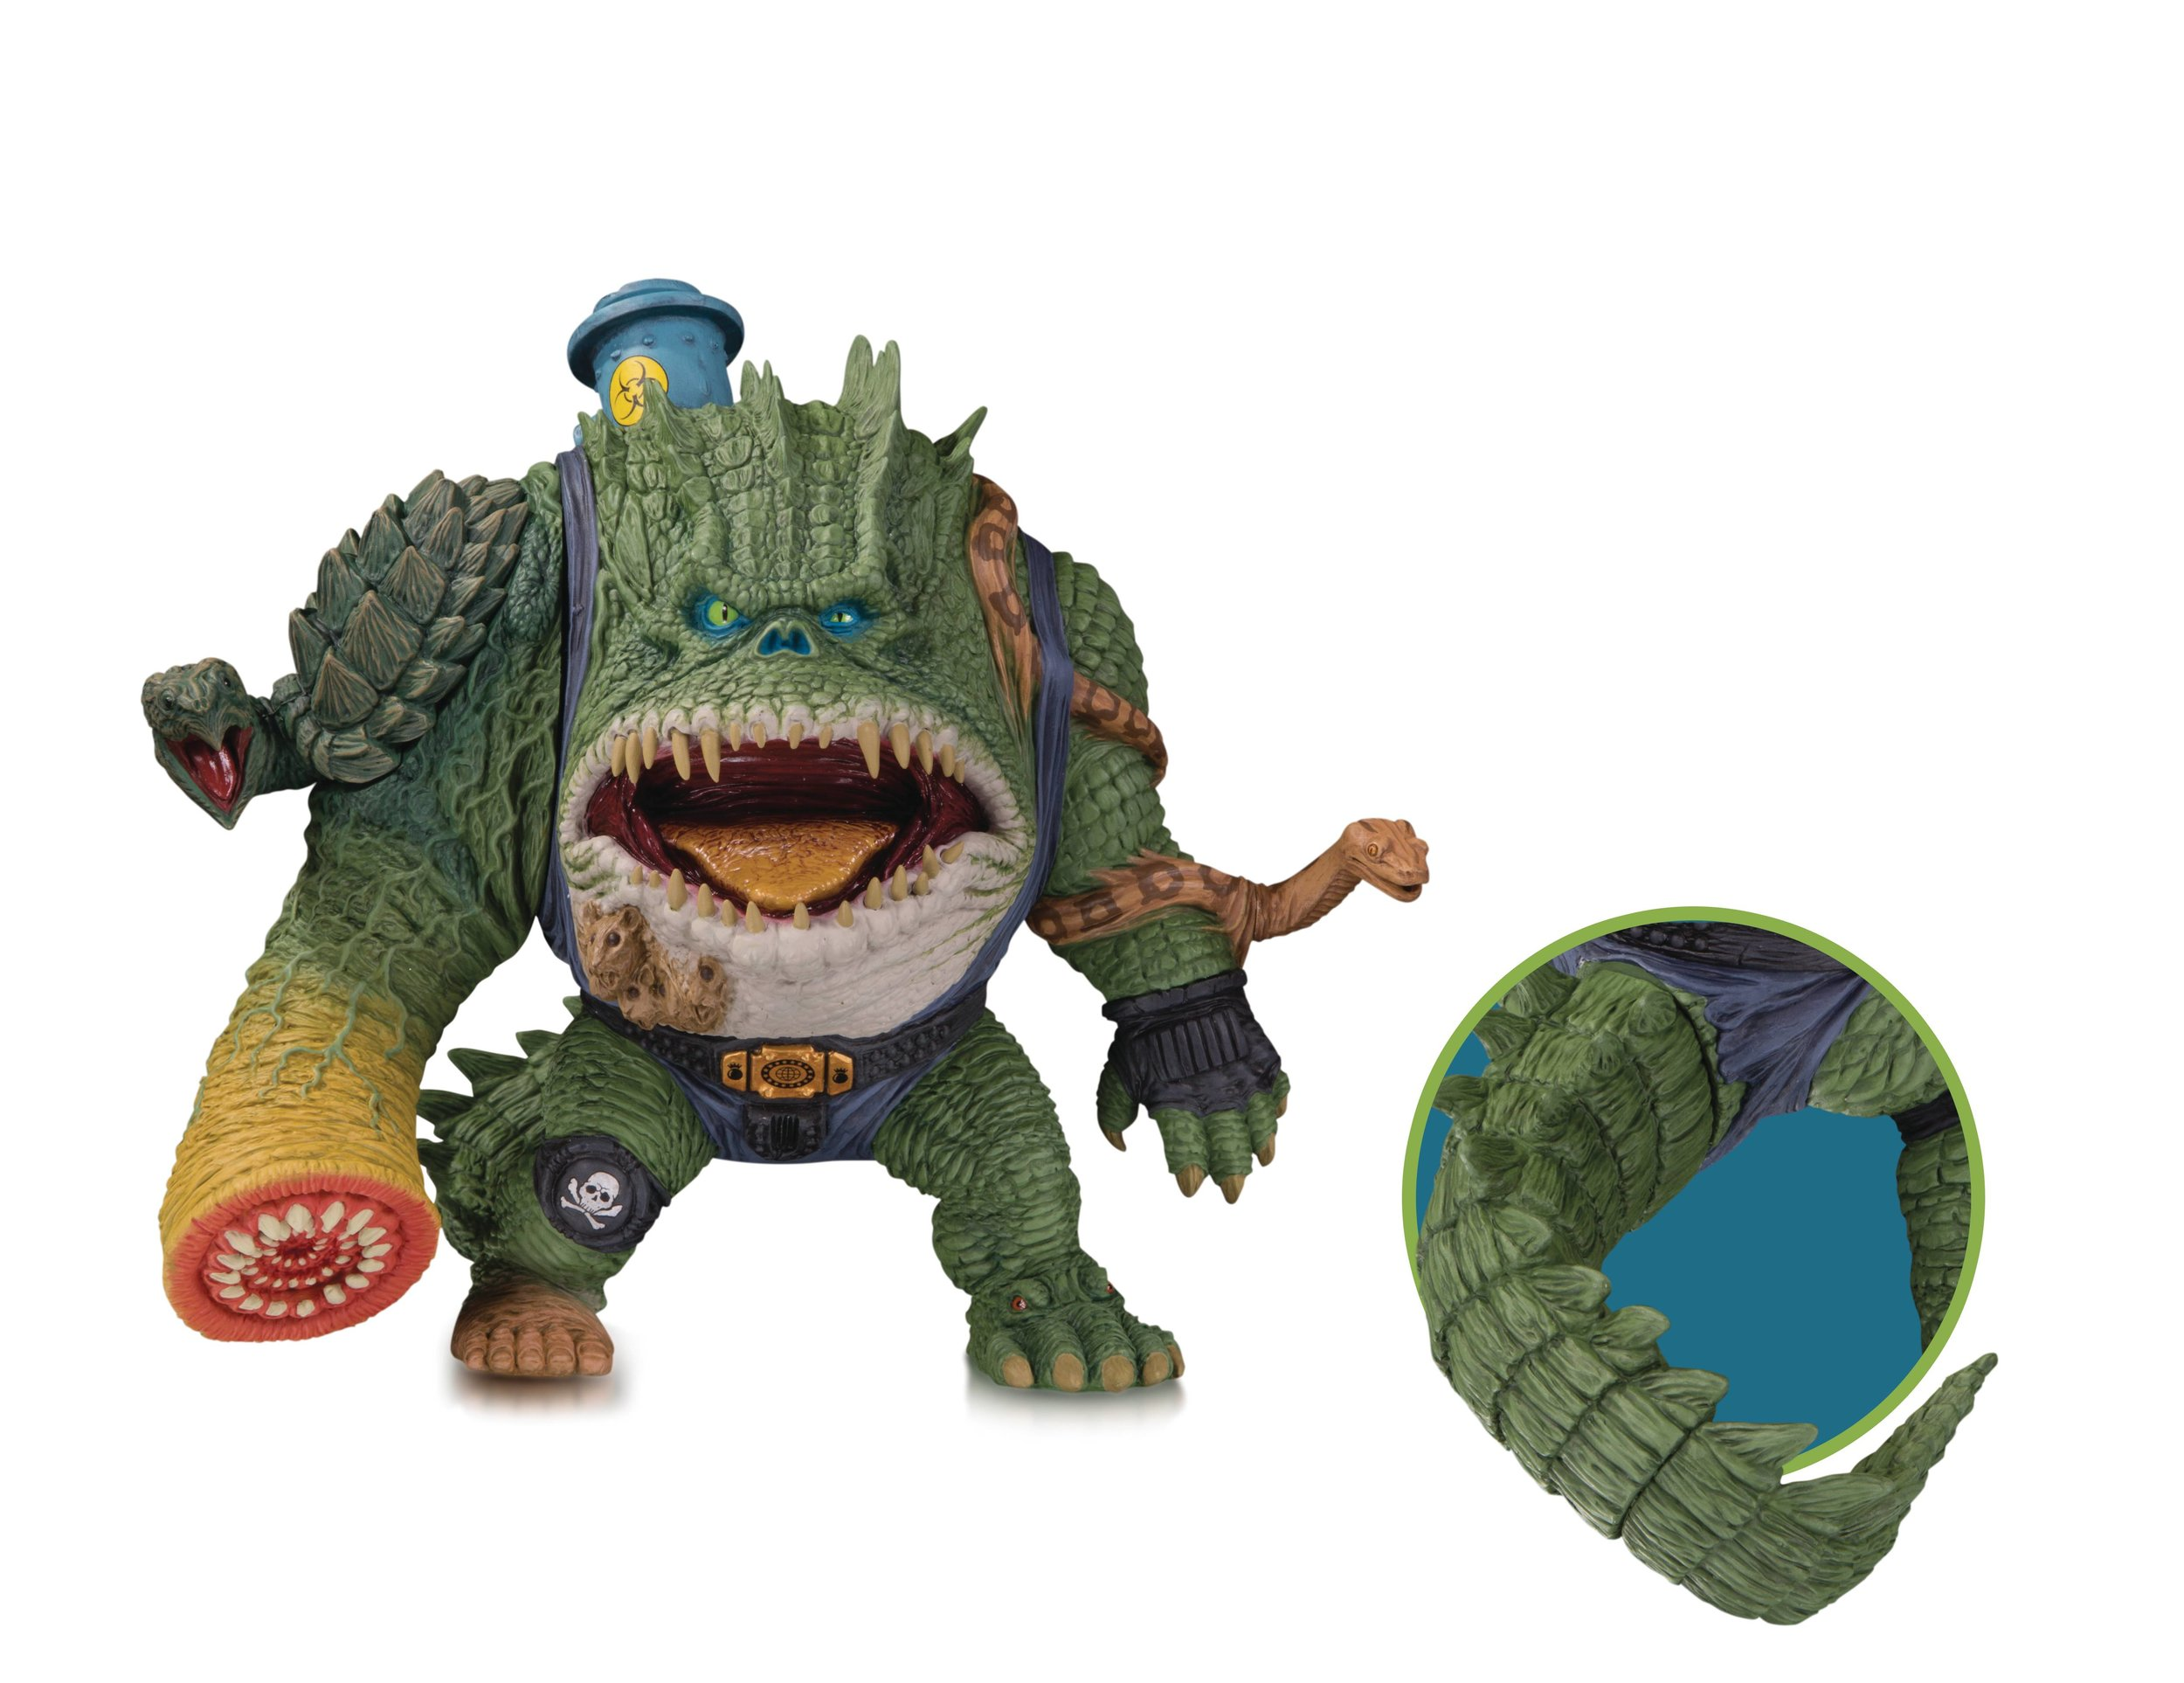 DC ARTISTS ALLEY KILLER CROC BY GROMAN VINYL FIG.jpg